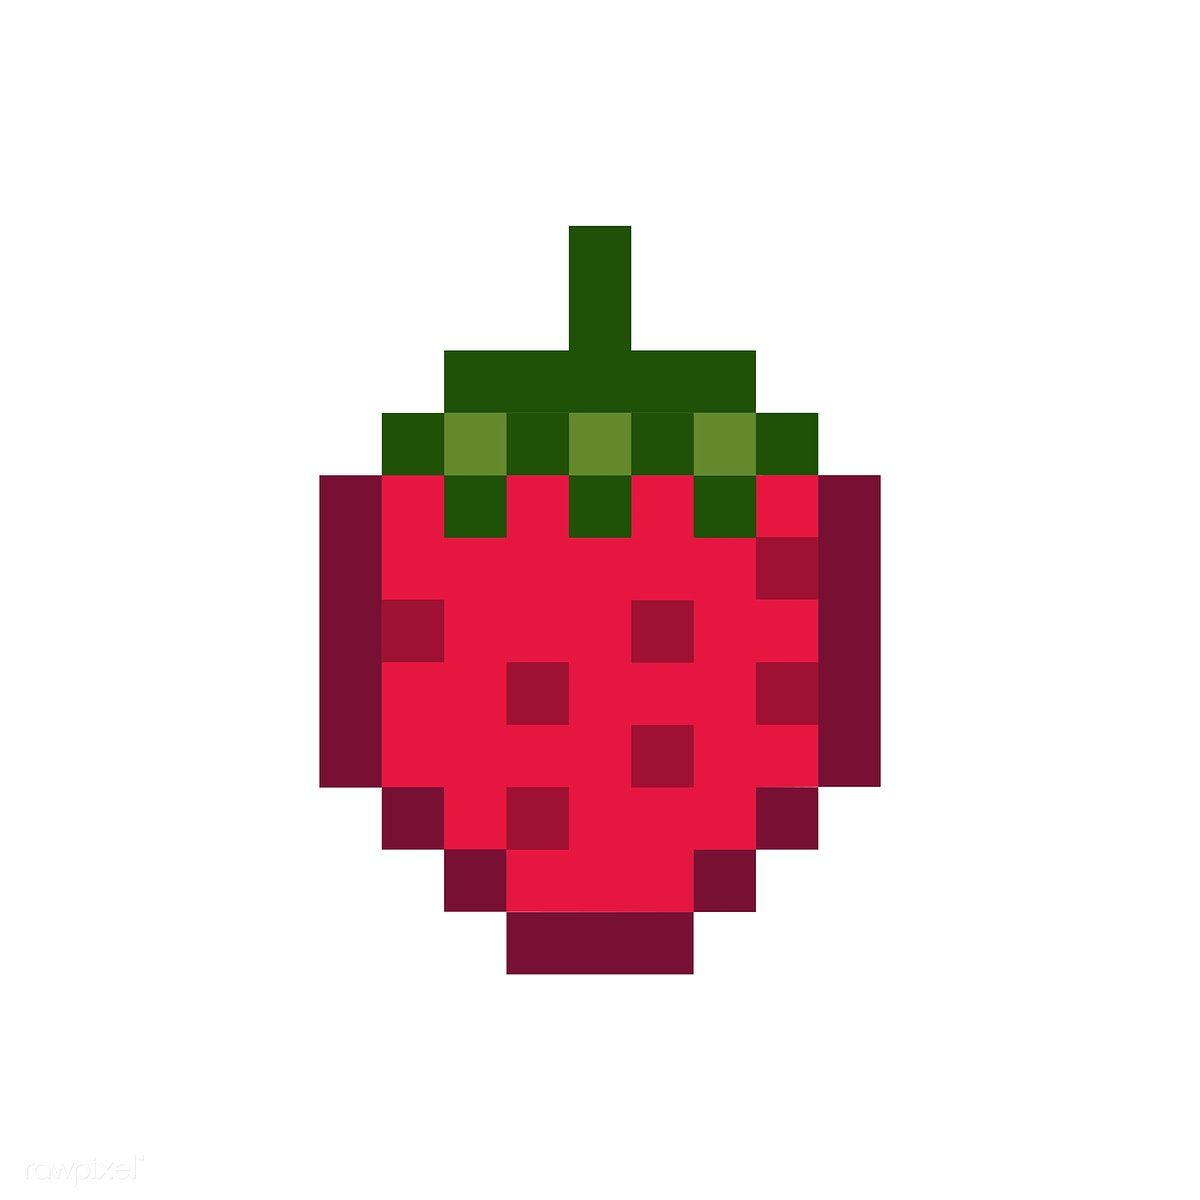 A Strawberry Pixelated Fruit Graphic Free Image By Rawpixel Com Easy Pixel Art Pixel Art Pattern Pixel Art Templates